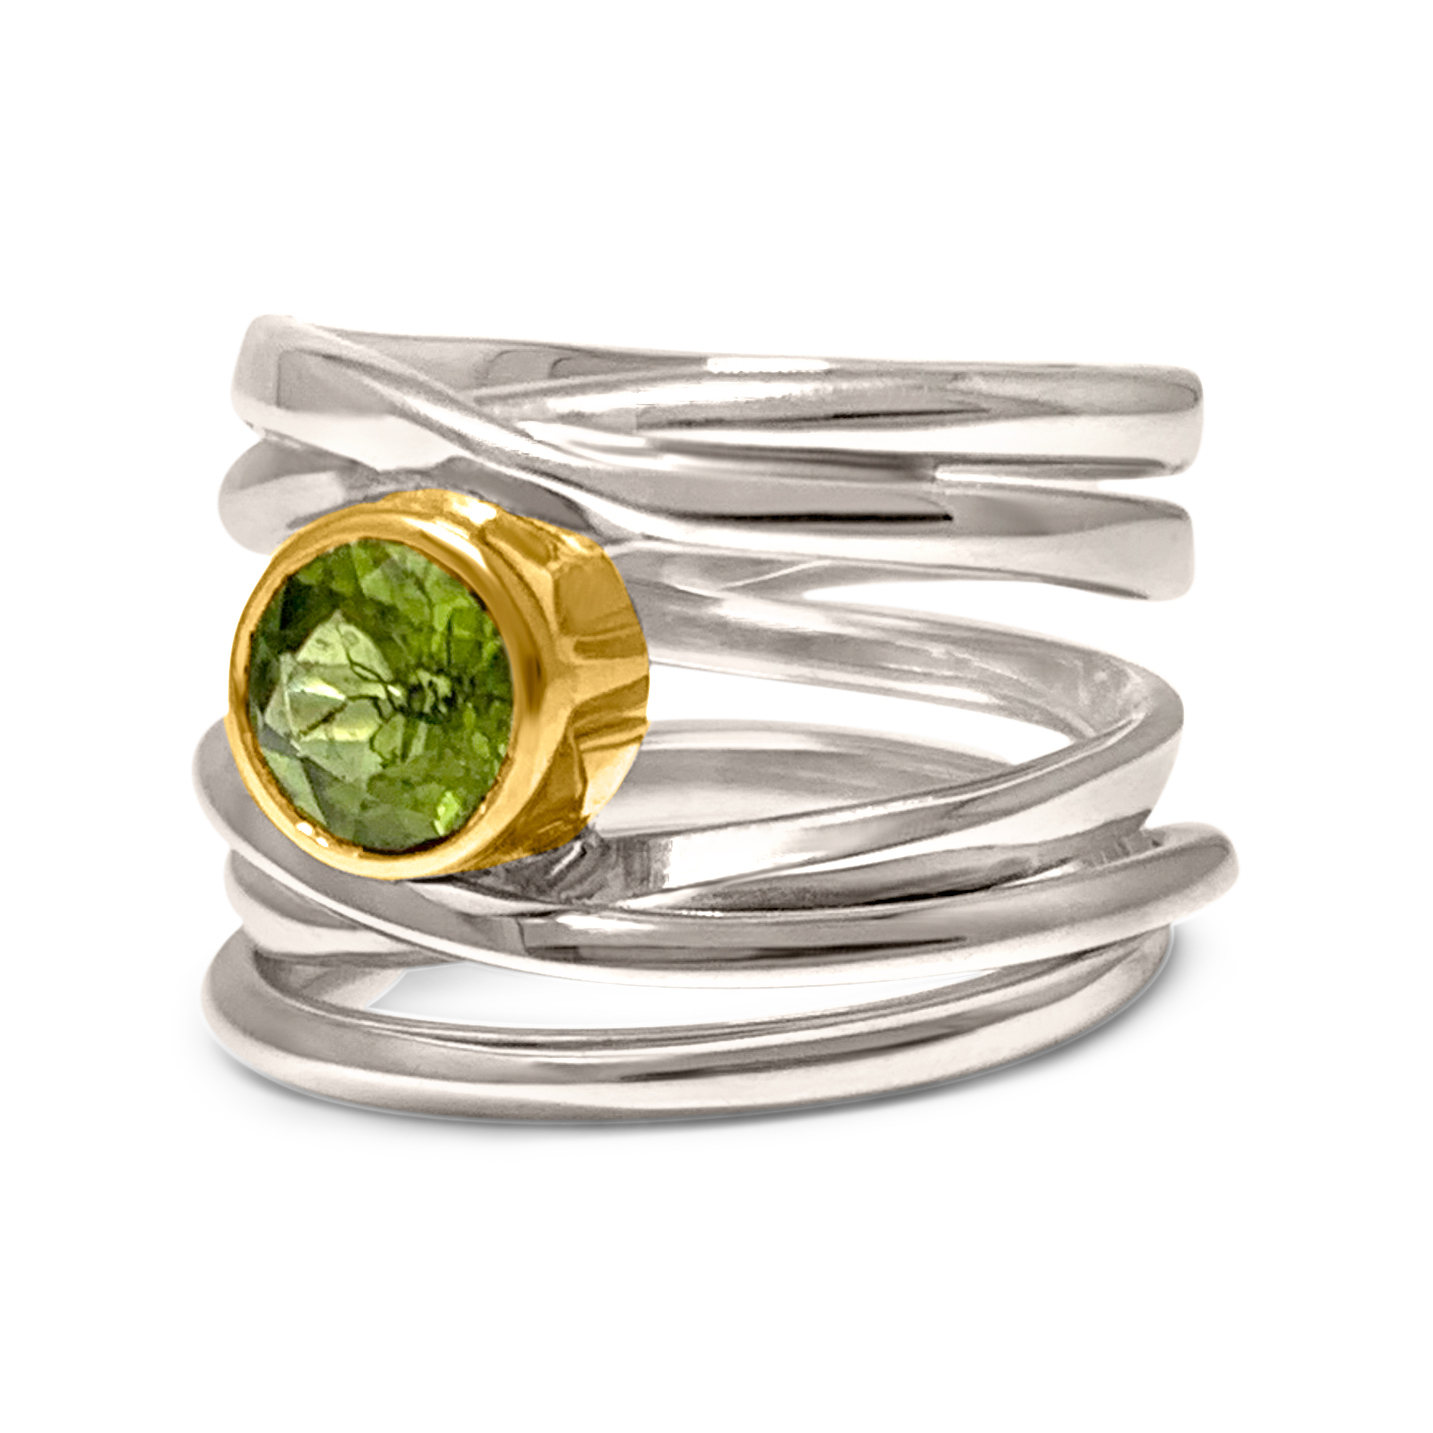 One-of-a-Kind #256 || Sterling Onefooter Ring with 6mm Peridot set in 18k Yellow-Gold Bezel, Size 6.5